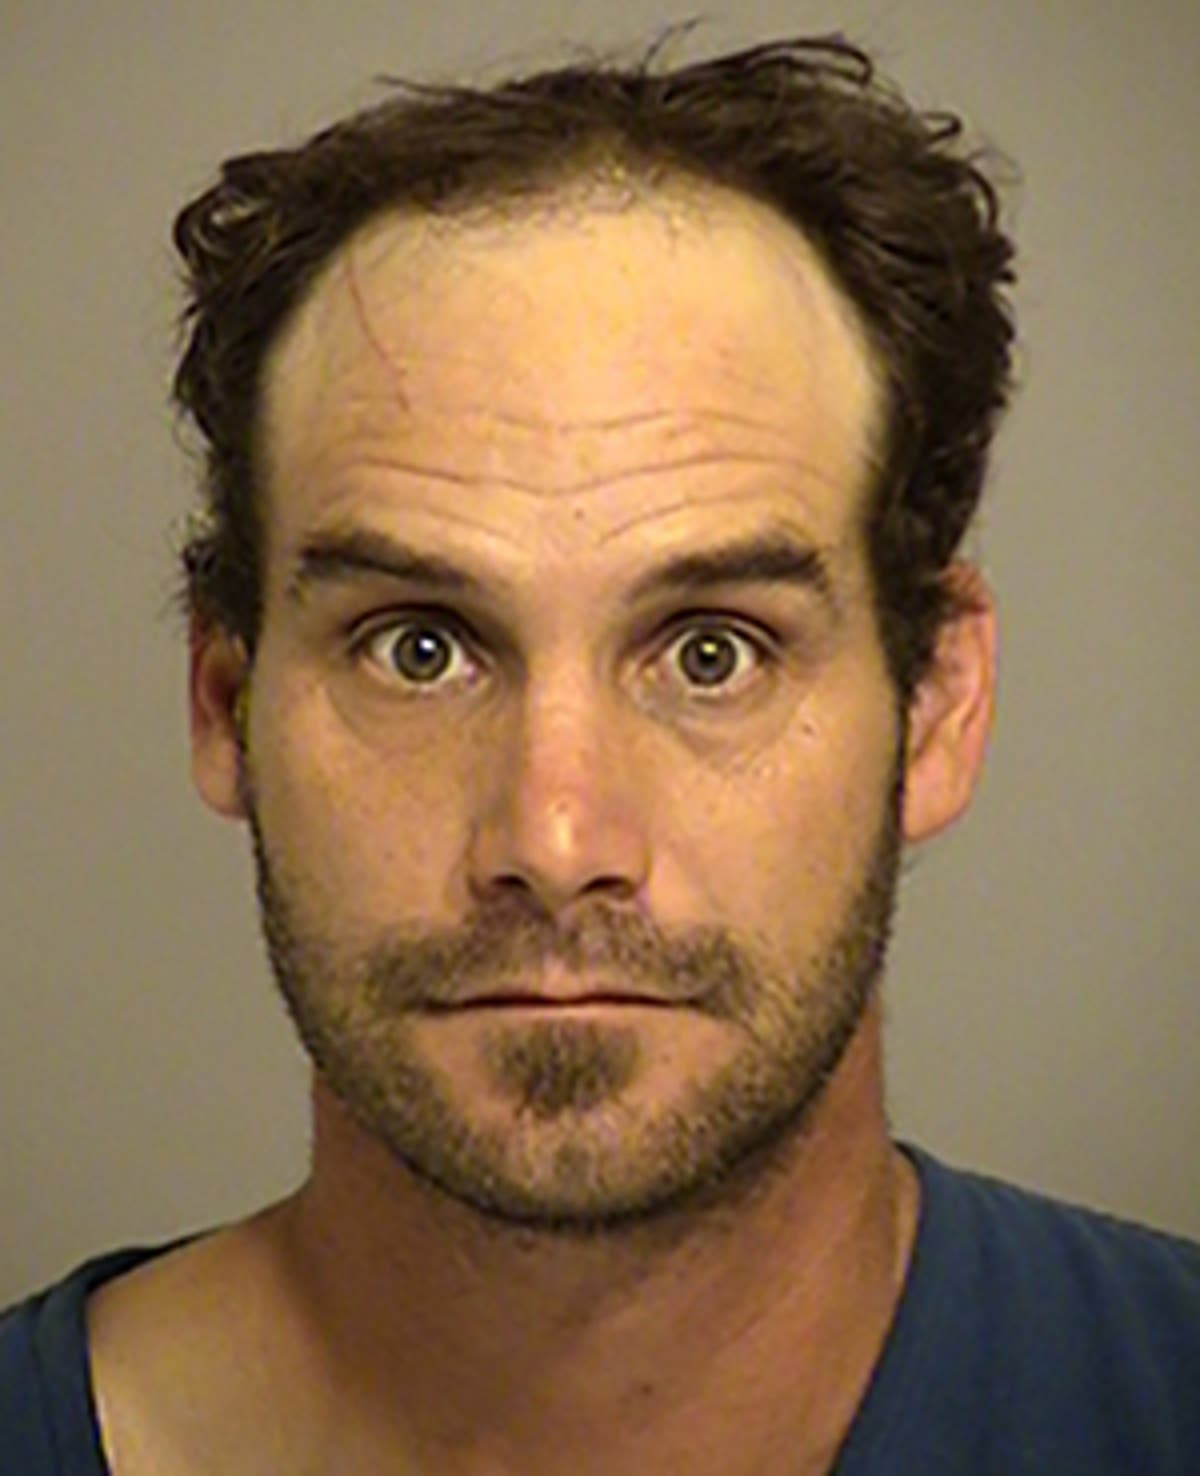 California man pleads not guilty after arrest for shooting at Firehawk copter